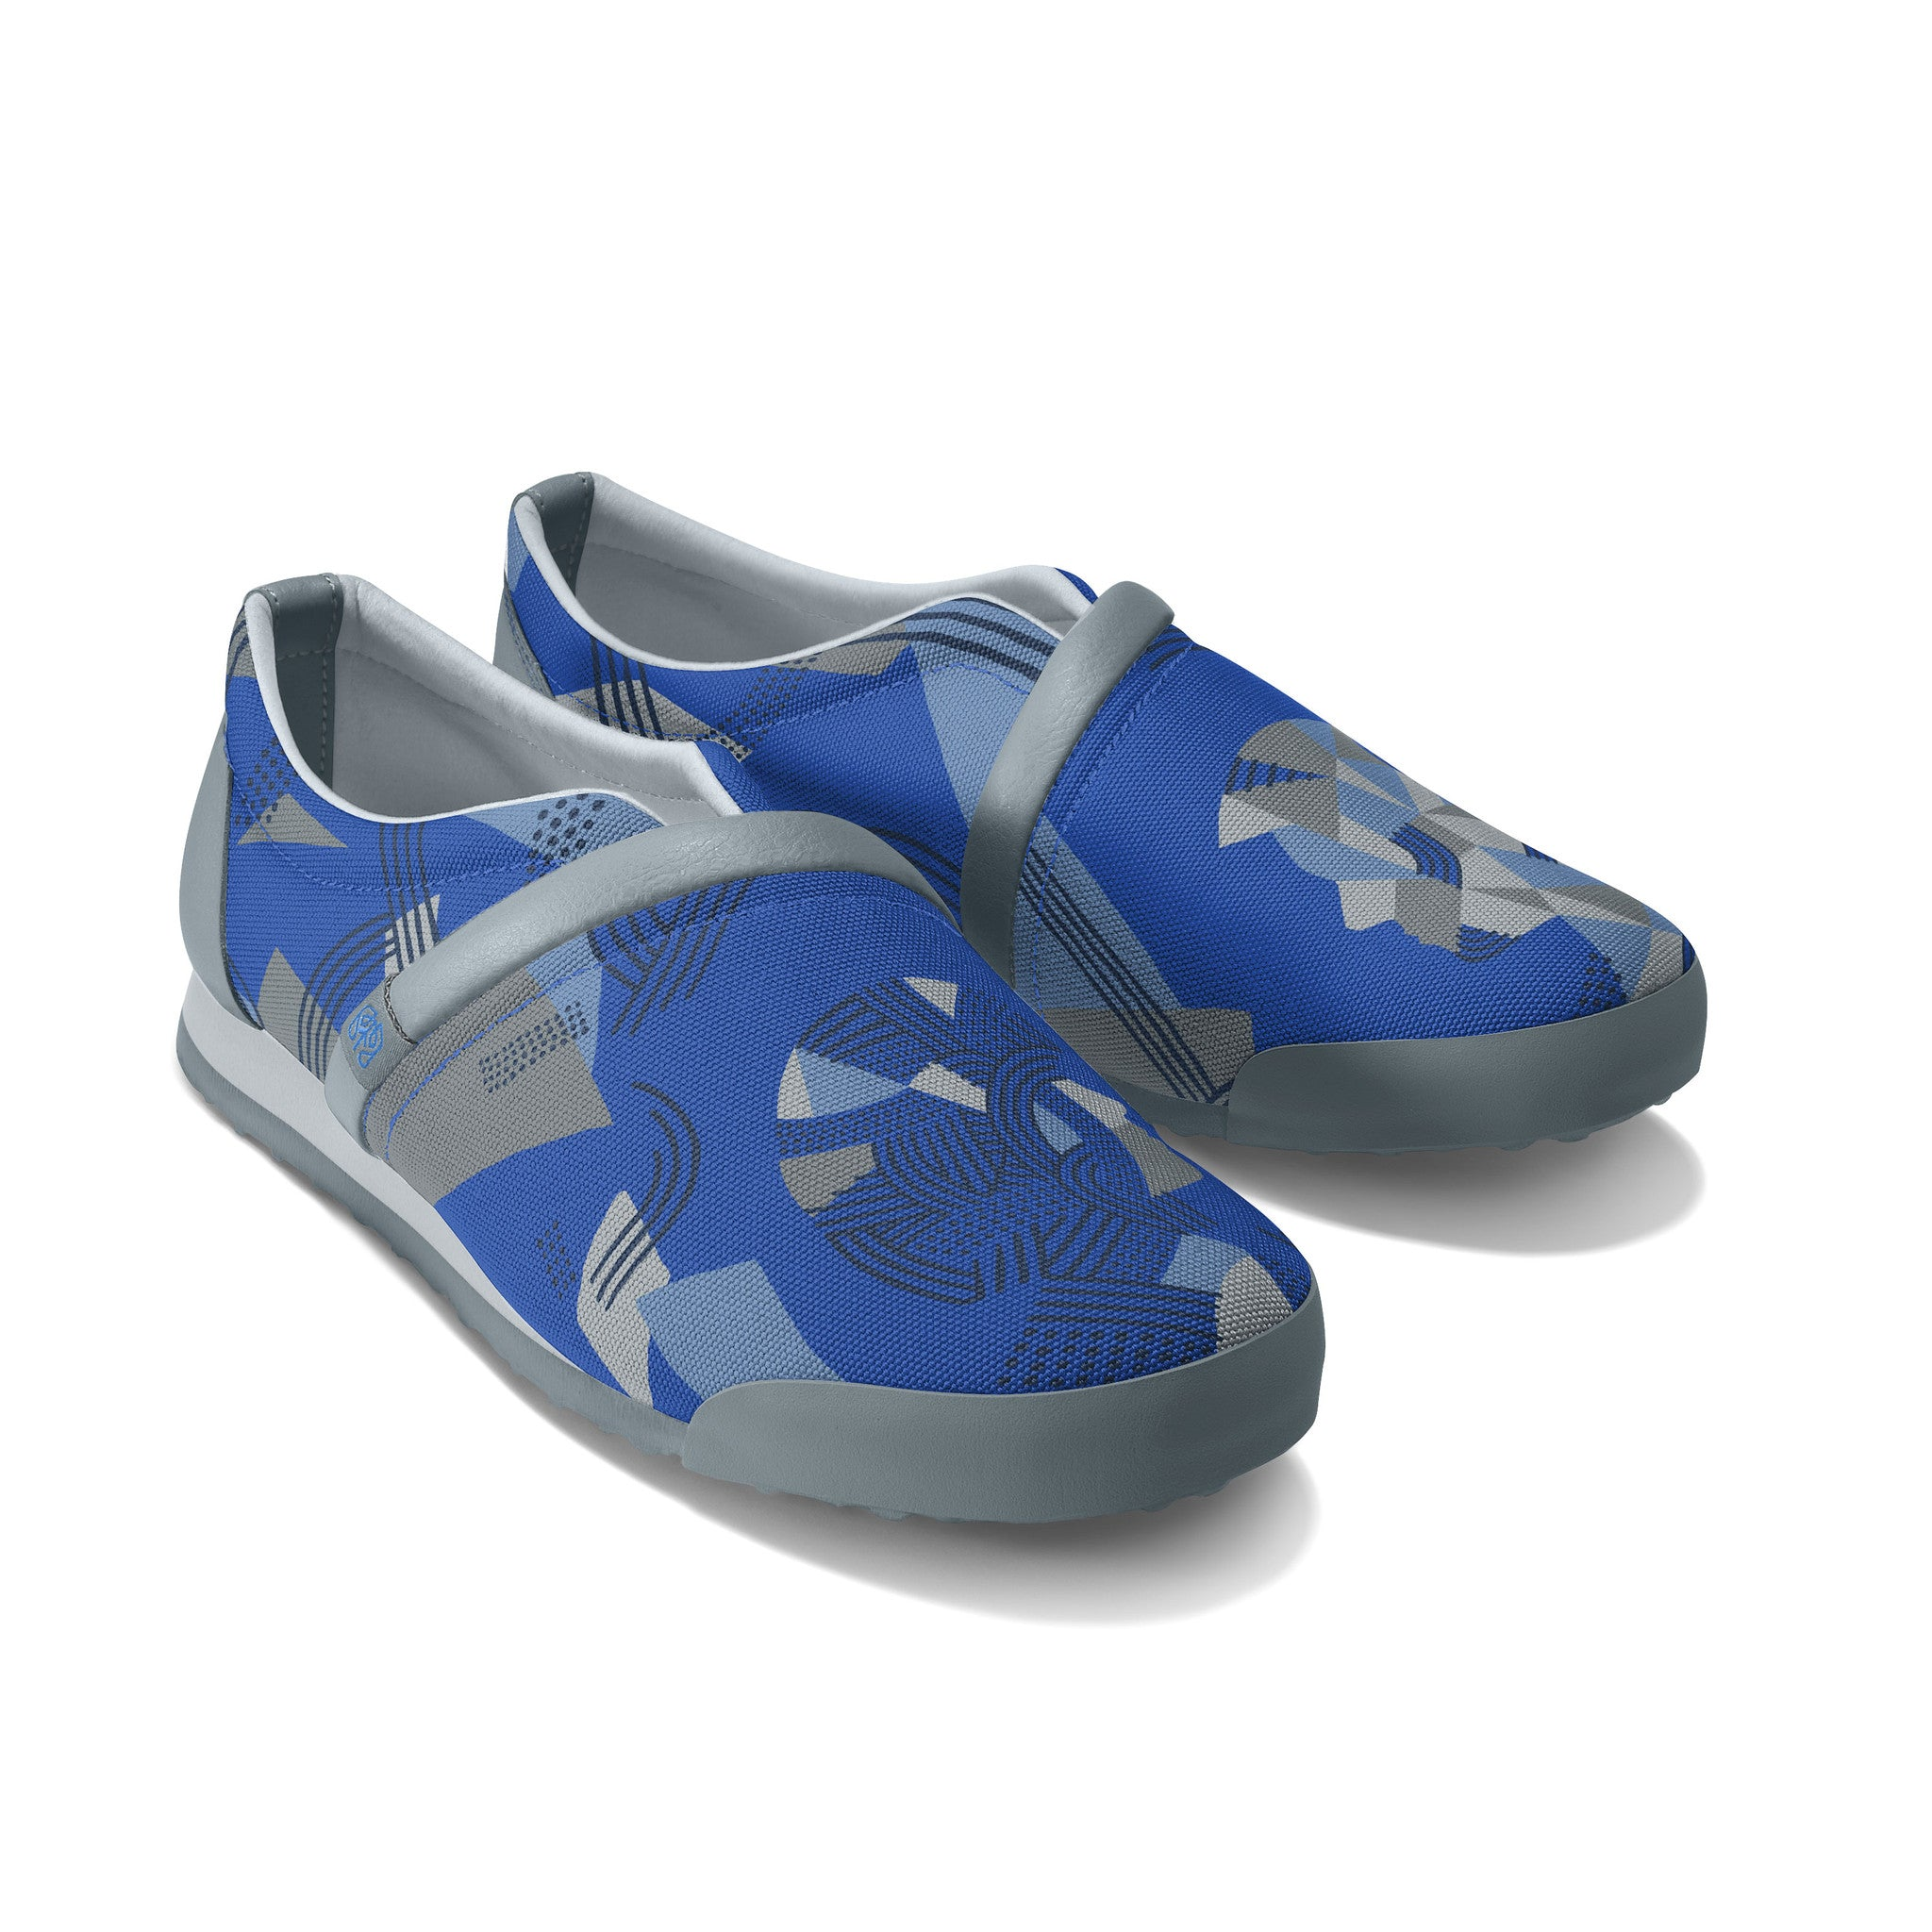 Strong_Blue - Common Ground Footwear Shoes Right Perspective View